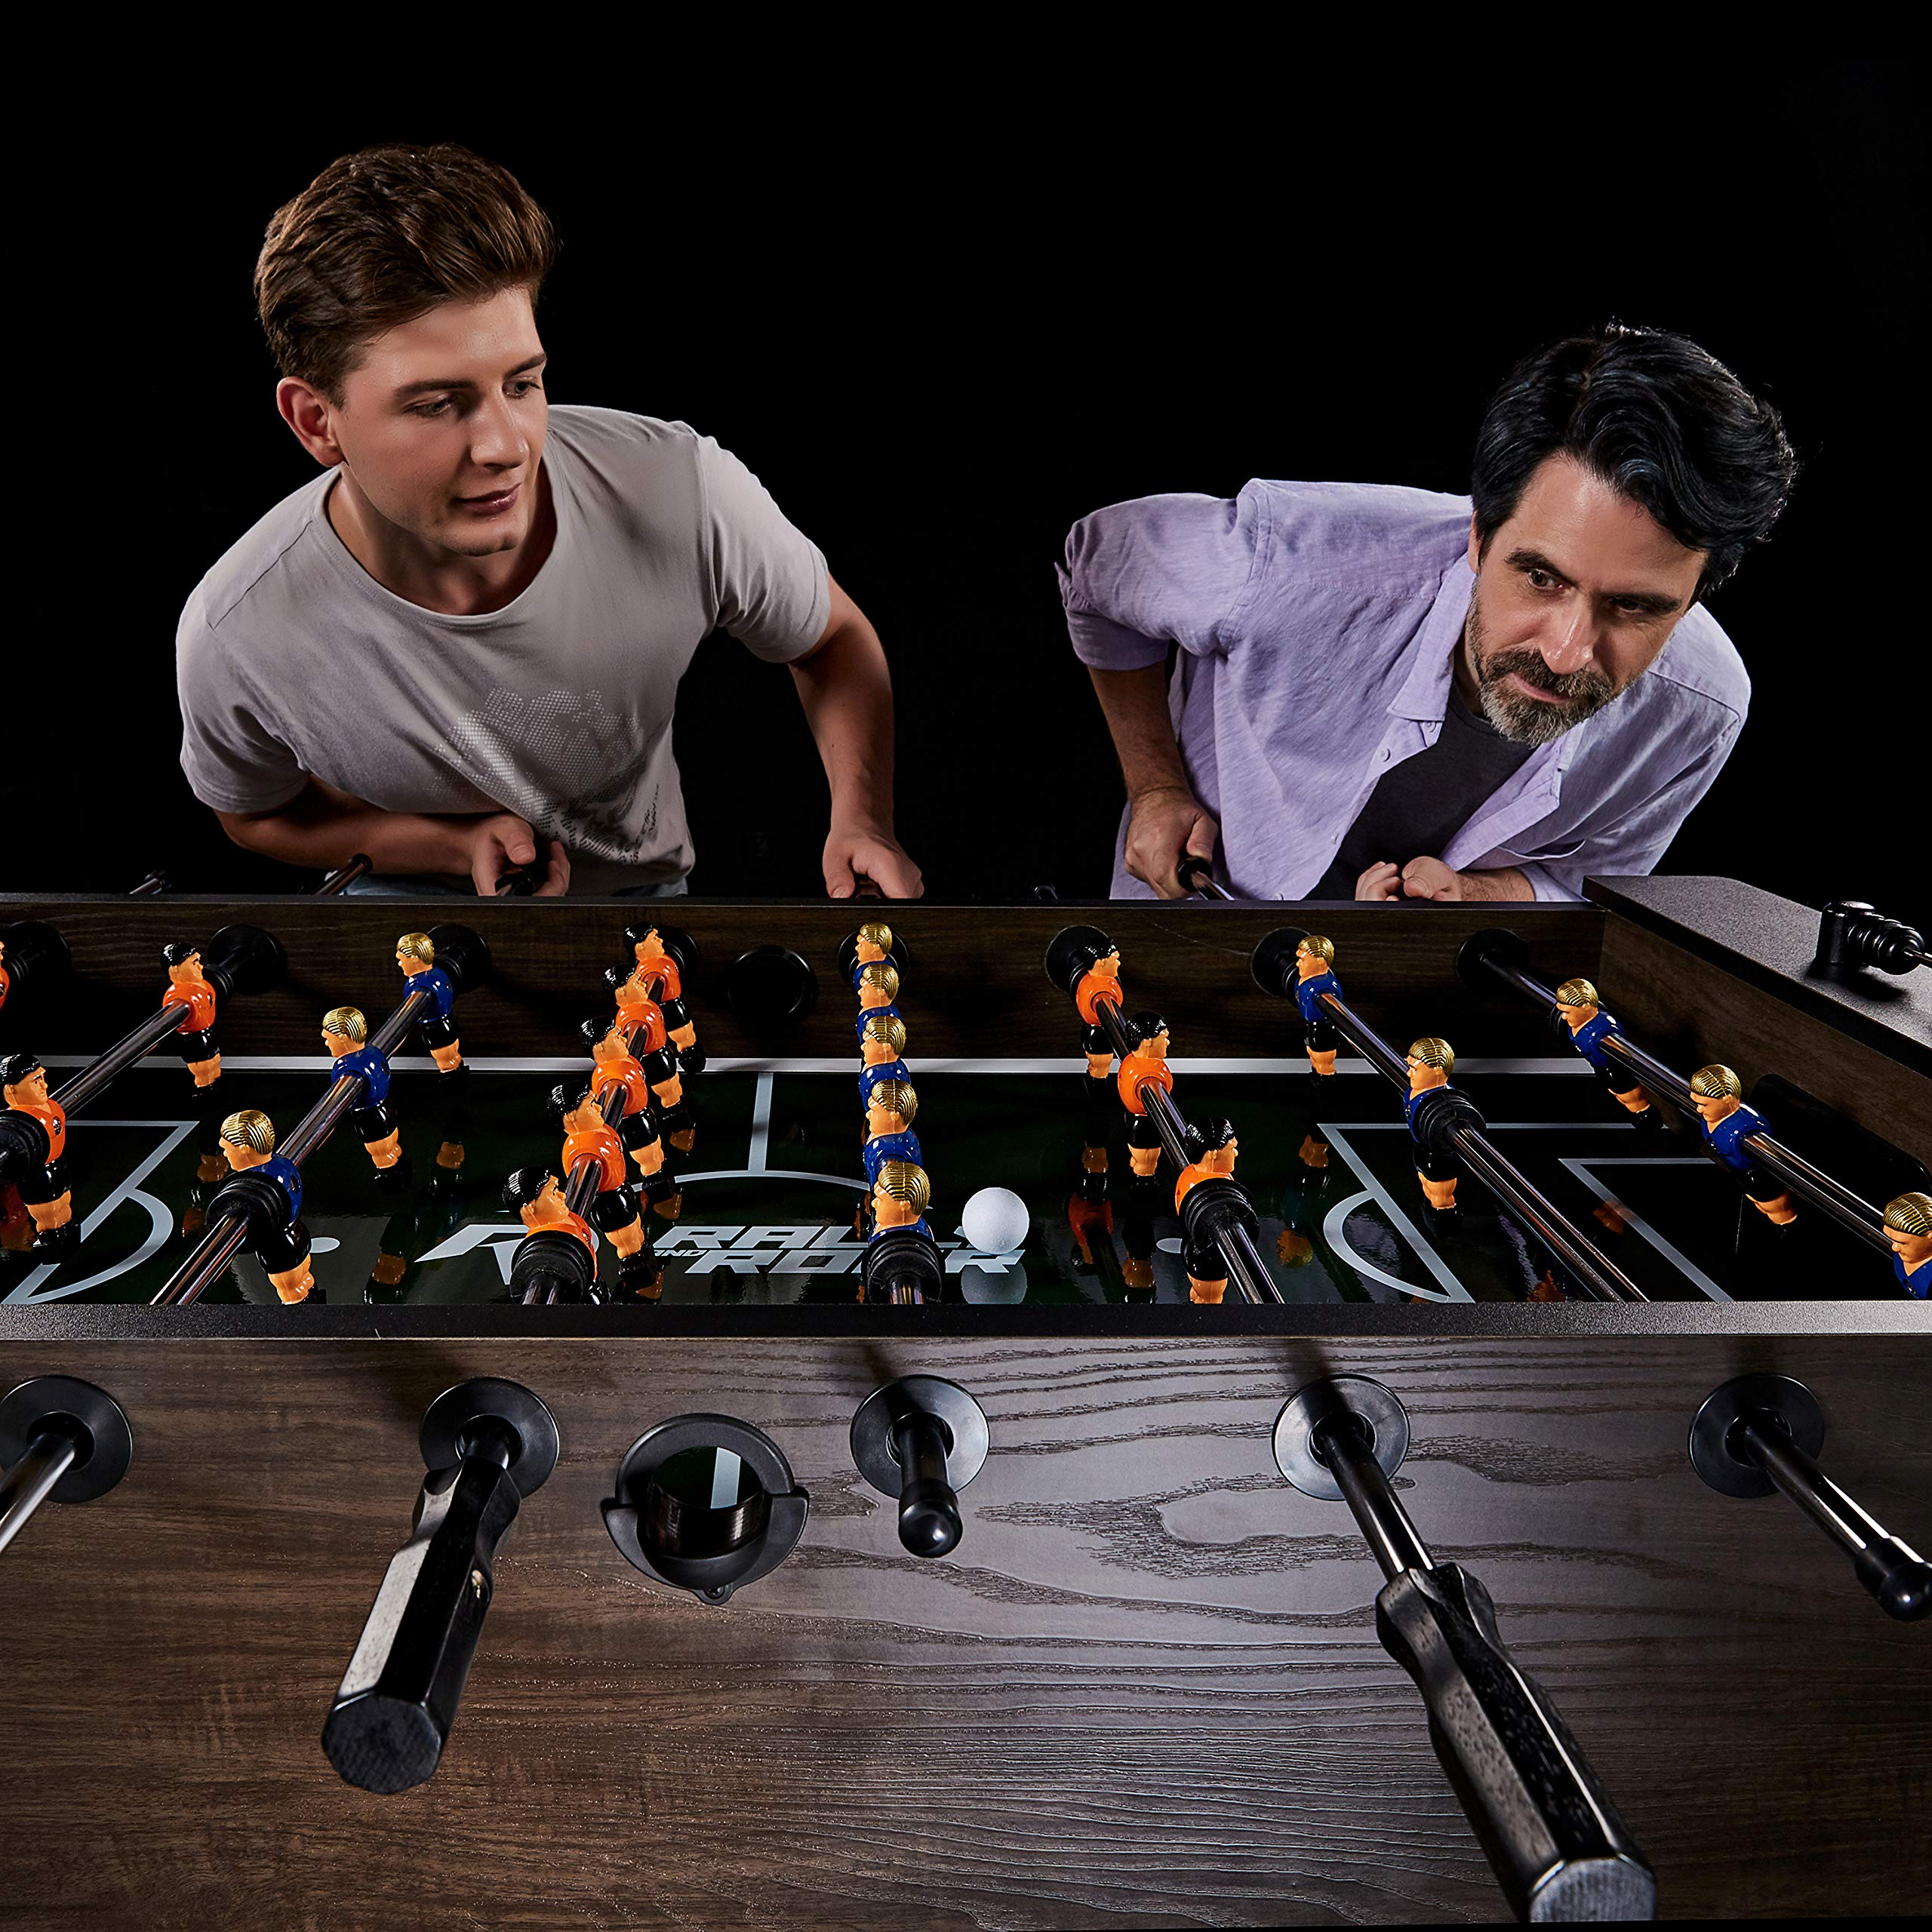 """Rally and Roar Foosball Table Game – 56"""" Standard Size Fun, Multi Person Table Soccer Adults, Kids - Recreational Foosball Games Game Rooms, Arcades, Bars, Parties, Family Night by Rally and Roar (Image #8)"""